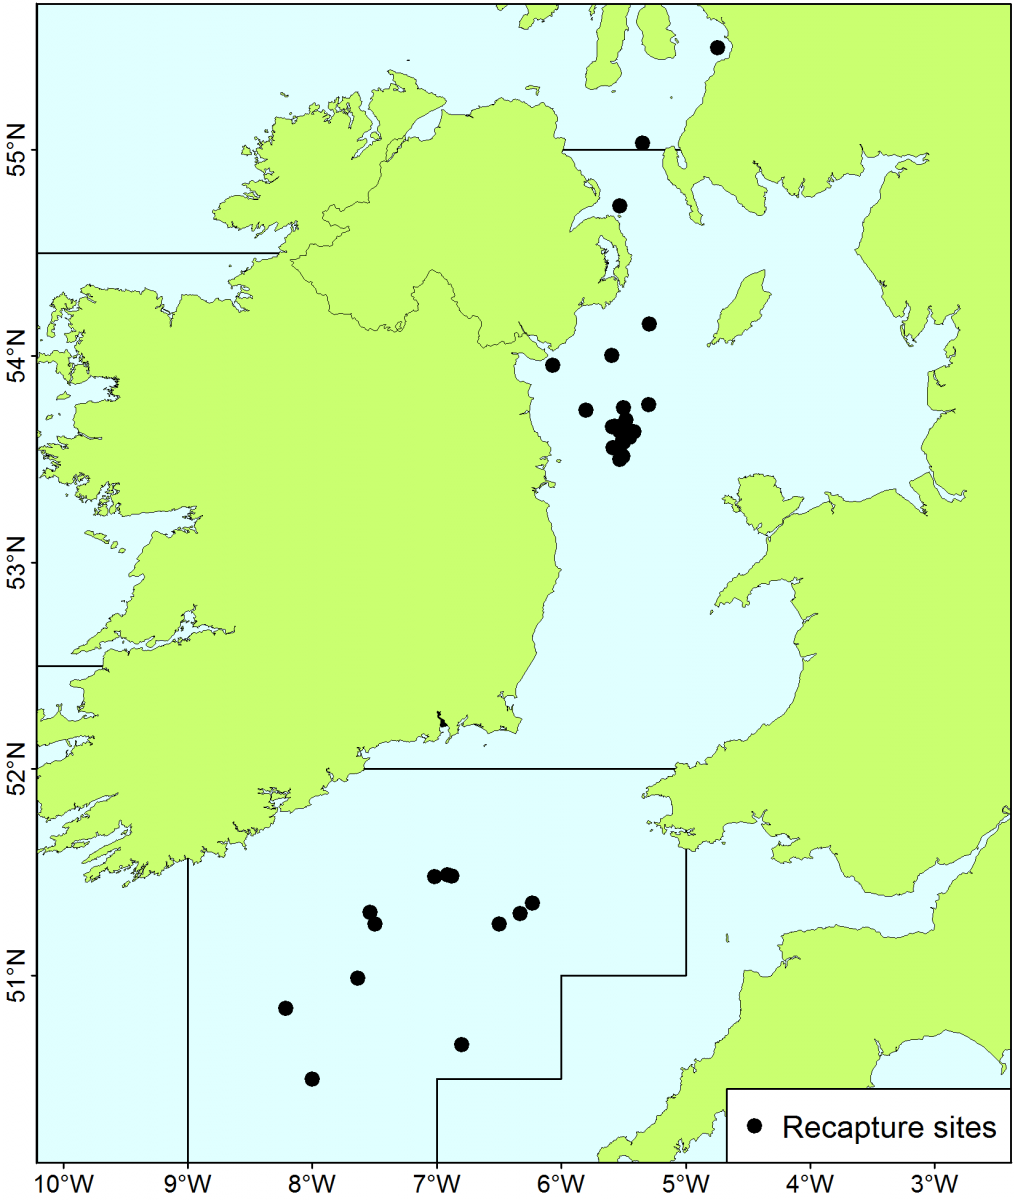 Recapture sites of tagged cod from the Irish Sea, Celtic Sea & North Channel